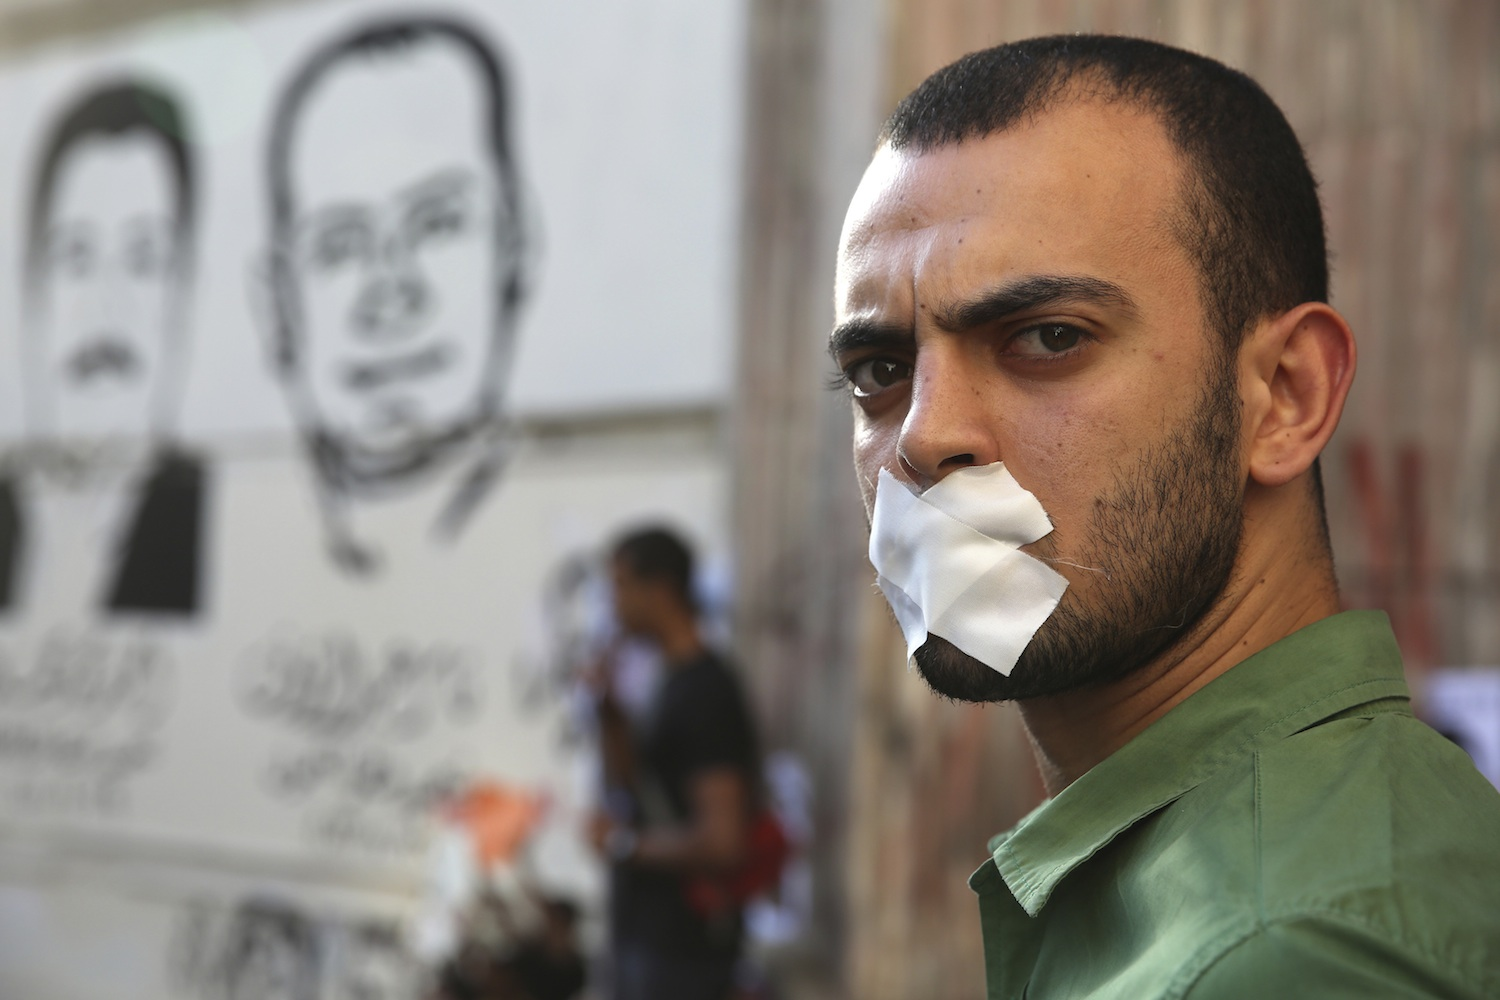 A protester rallies in support of journalists who were detained by Egyptian authorities, in front of the Press Syndicate in Cairo. June 1, 2014. (Photo: Reuters/Mohamed Abd El Ghany)